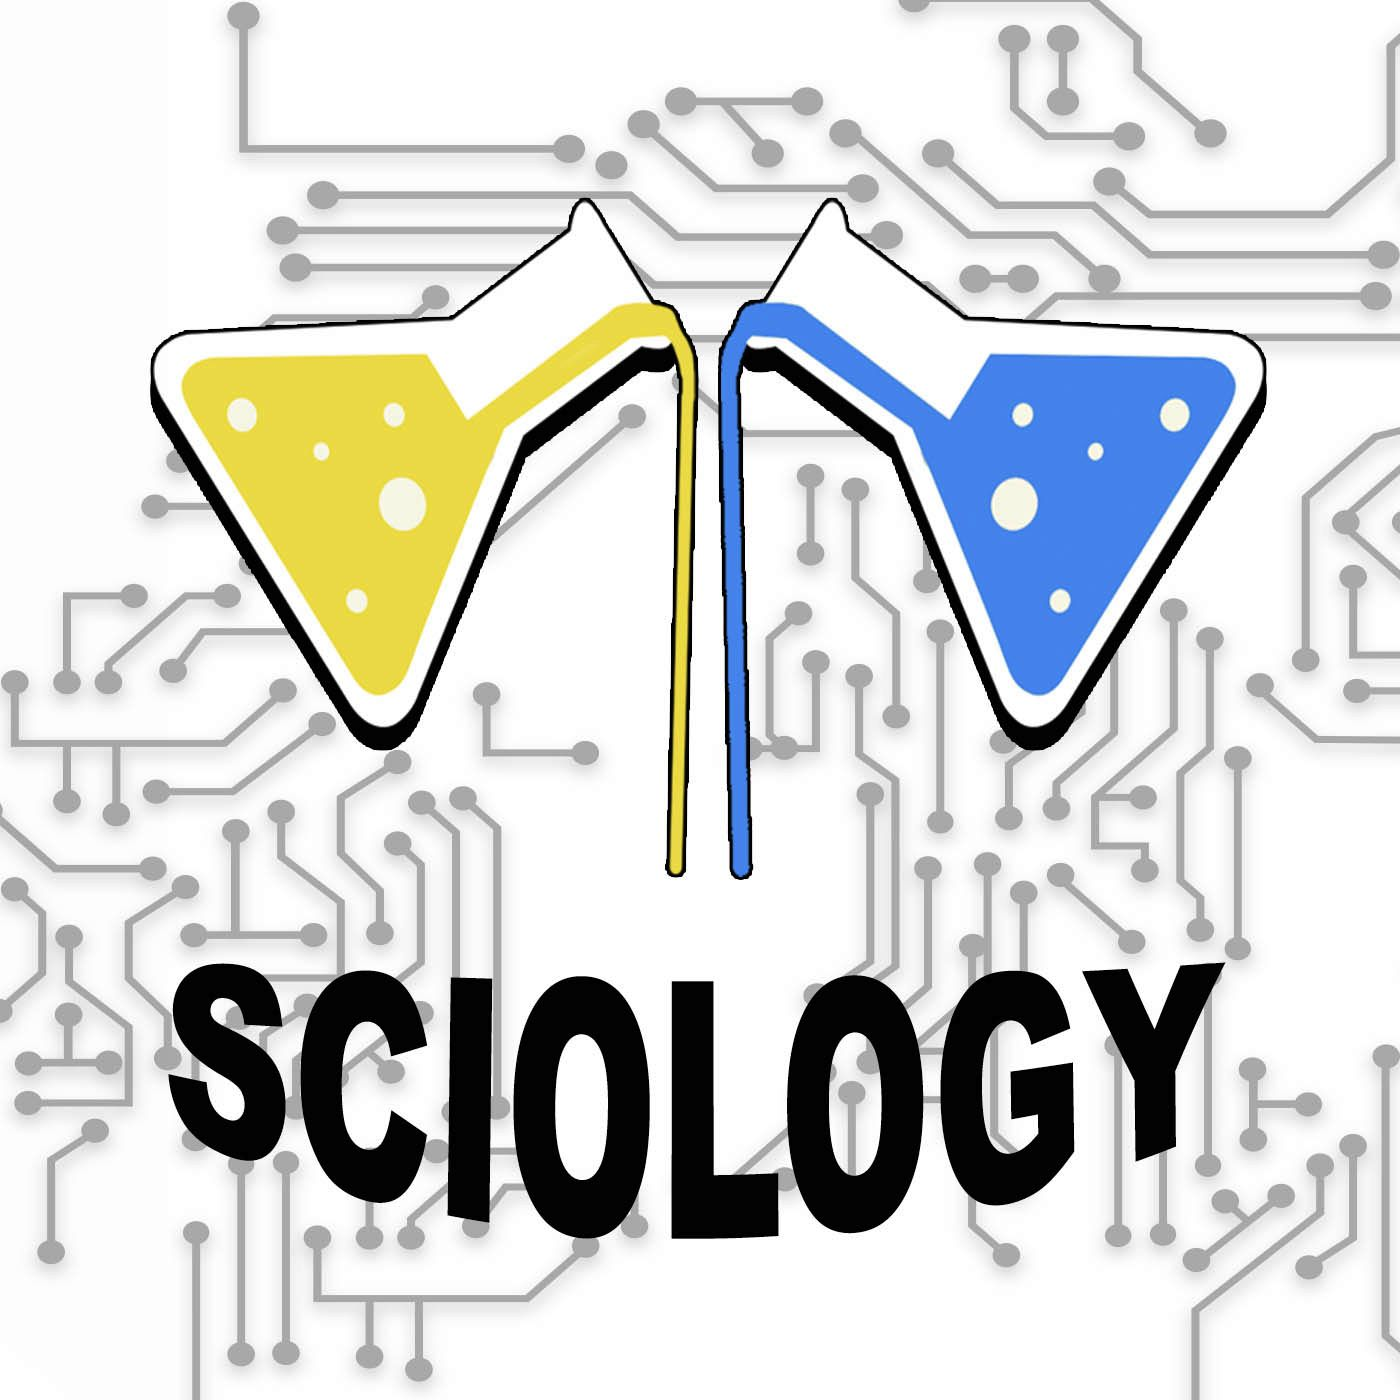 The Sciology Podcast